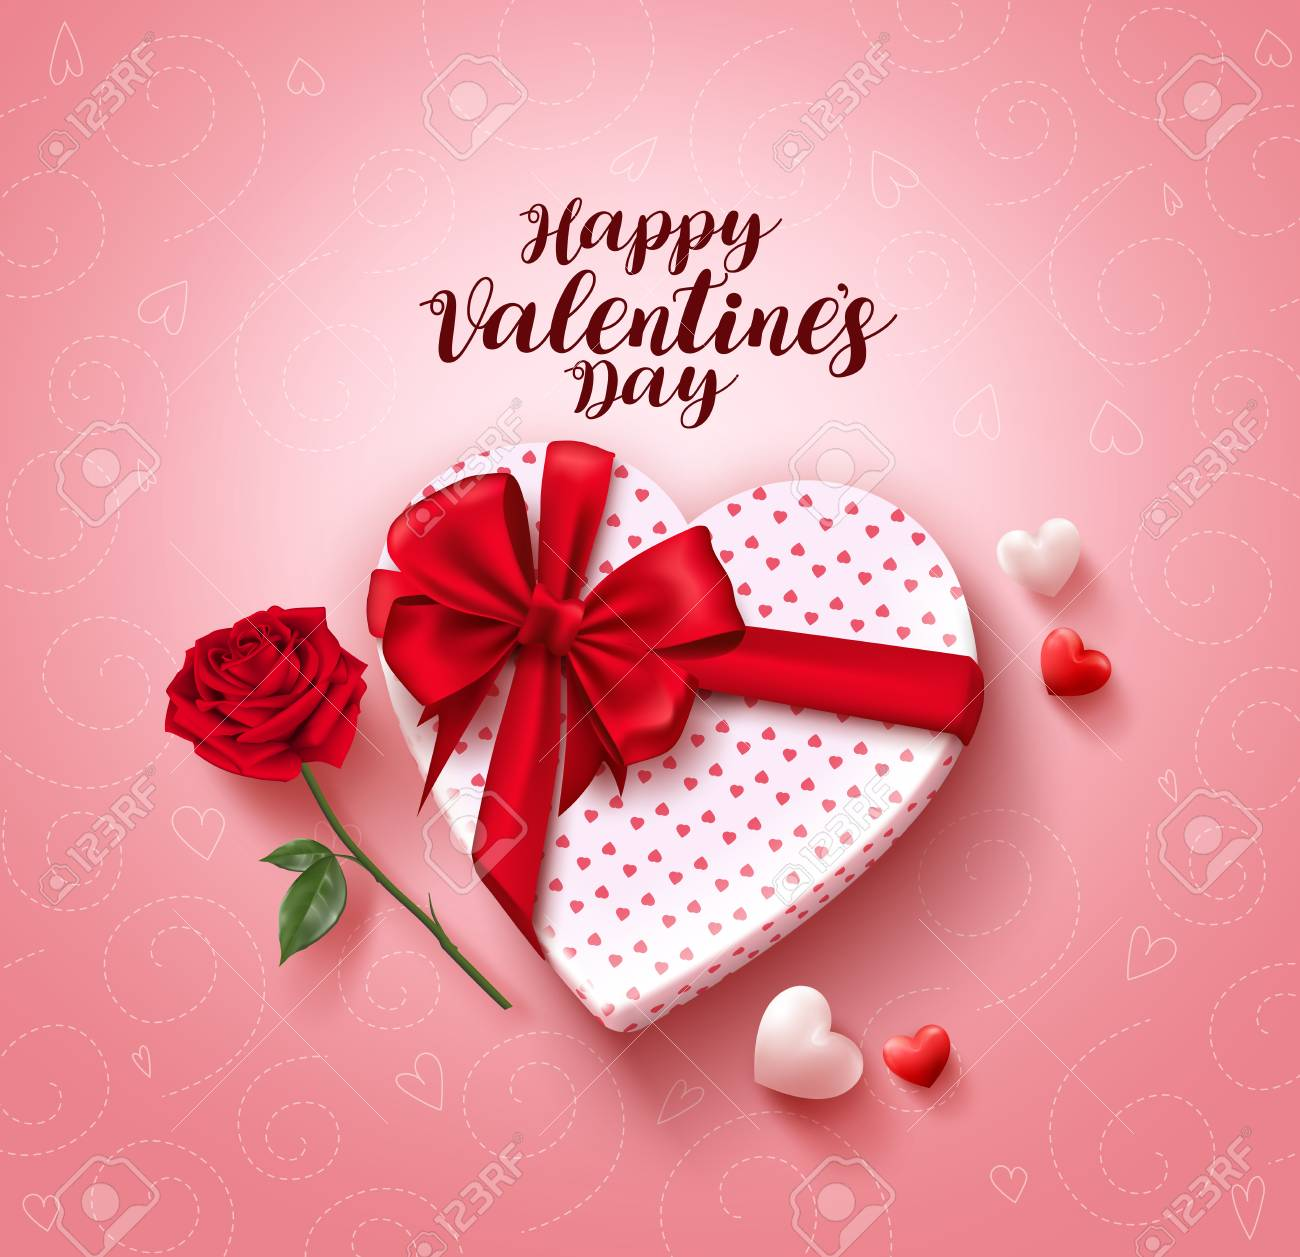 Happy Valentines Day Greeting Card Vector Design With Love Gift